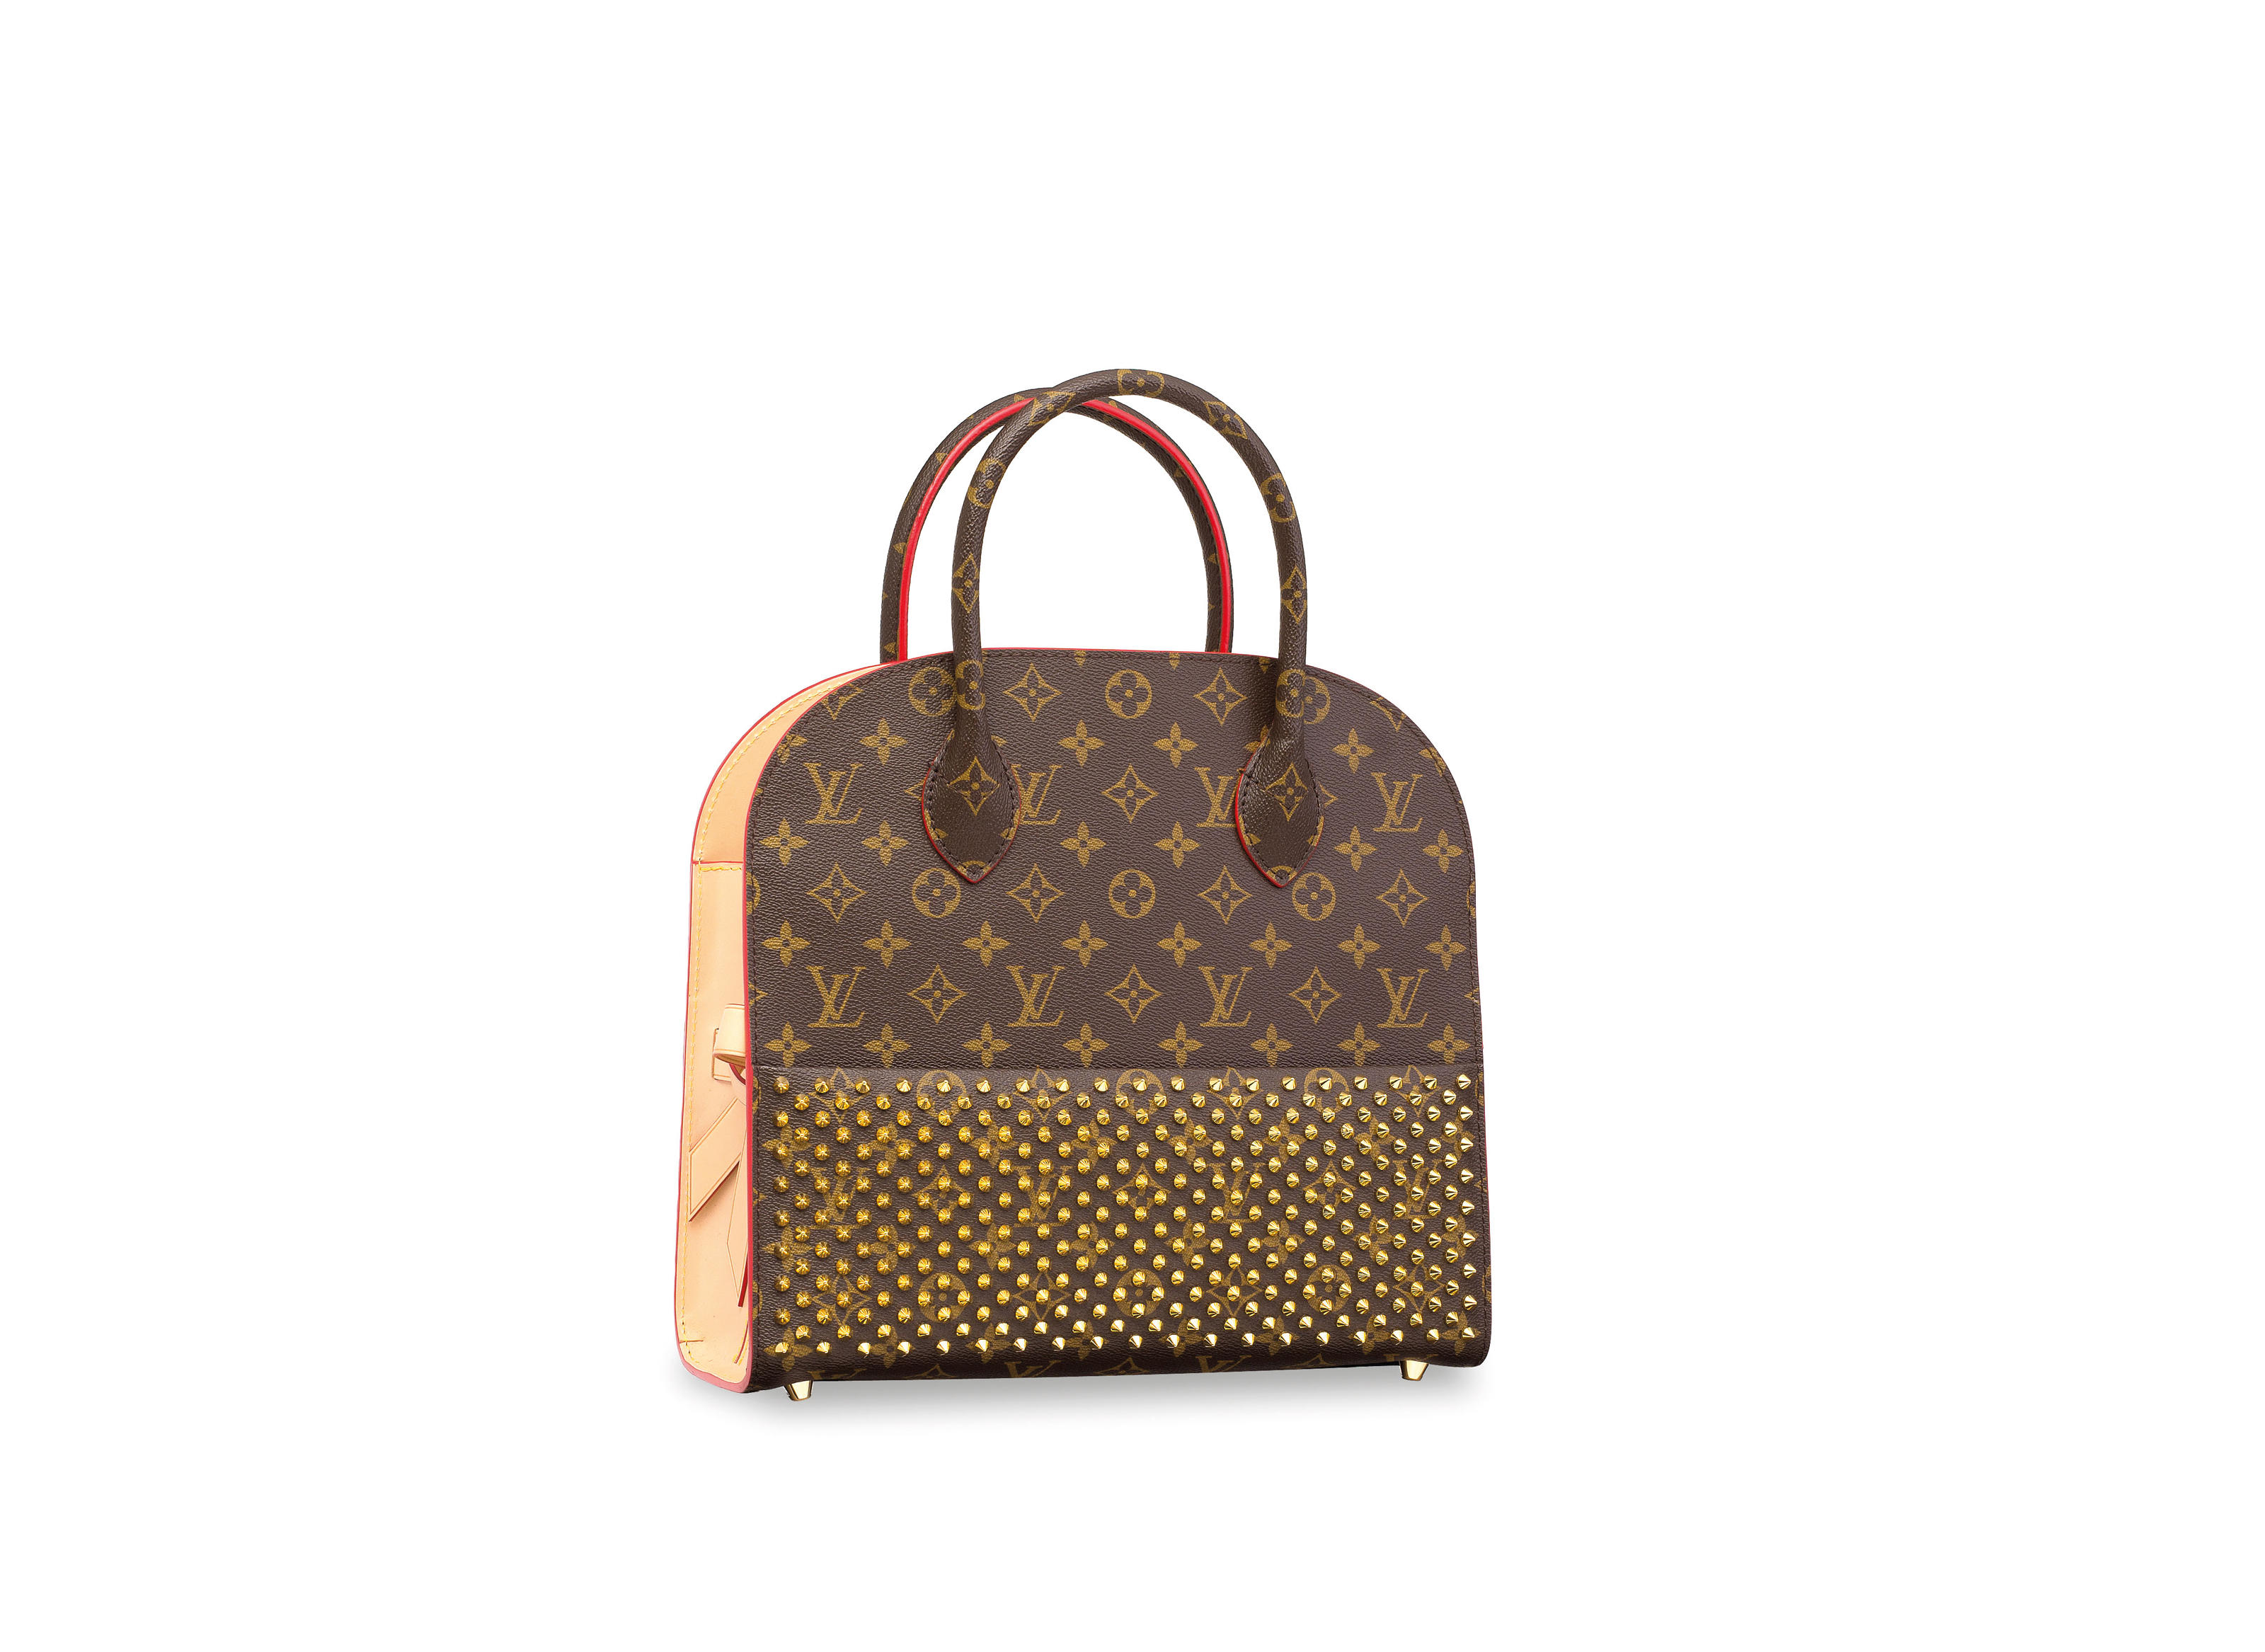 LOUIS VUITTON. A CHRISTIAN LOU